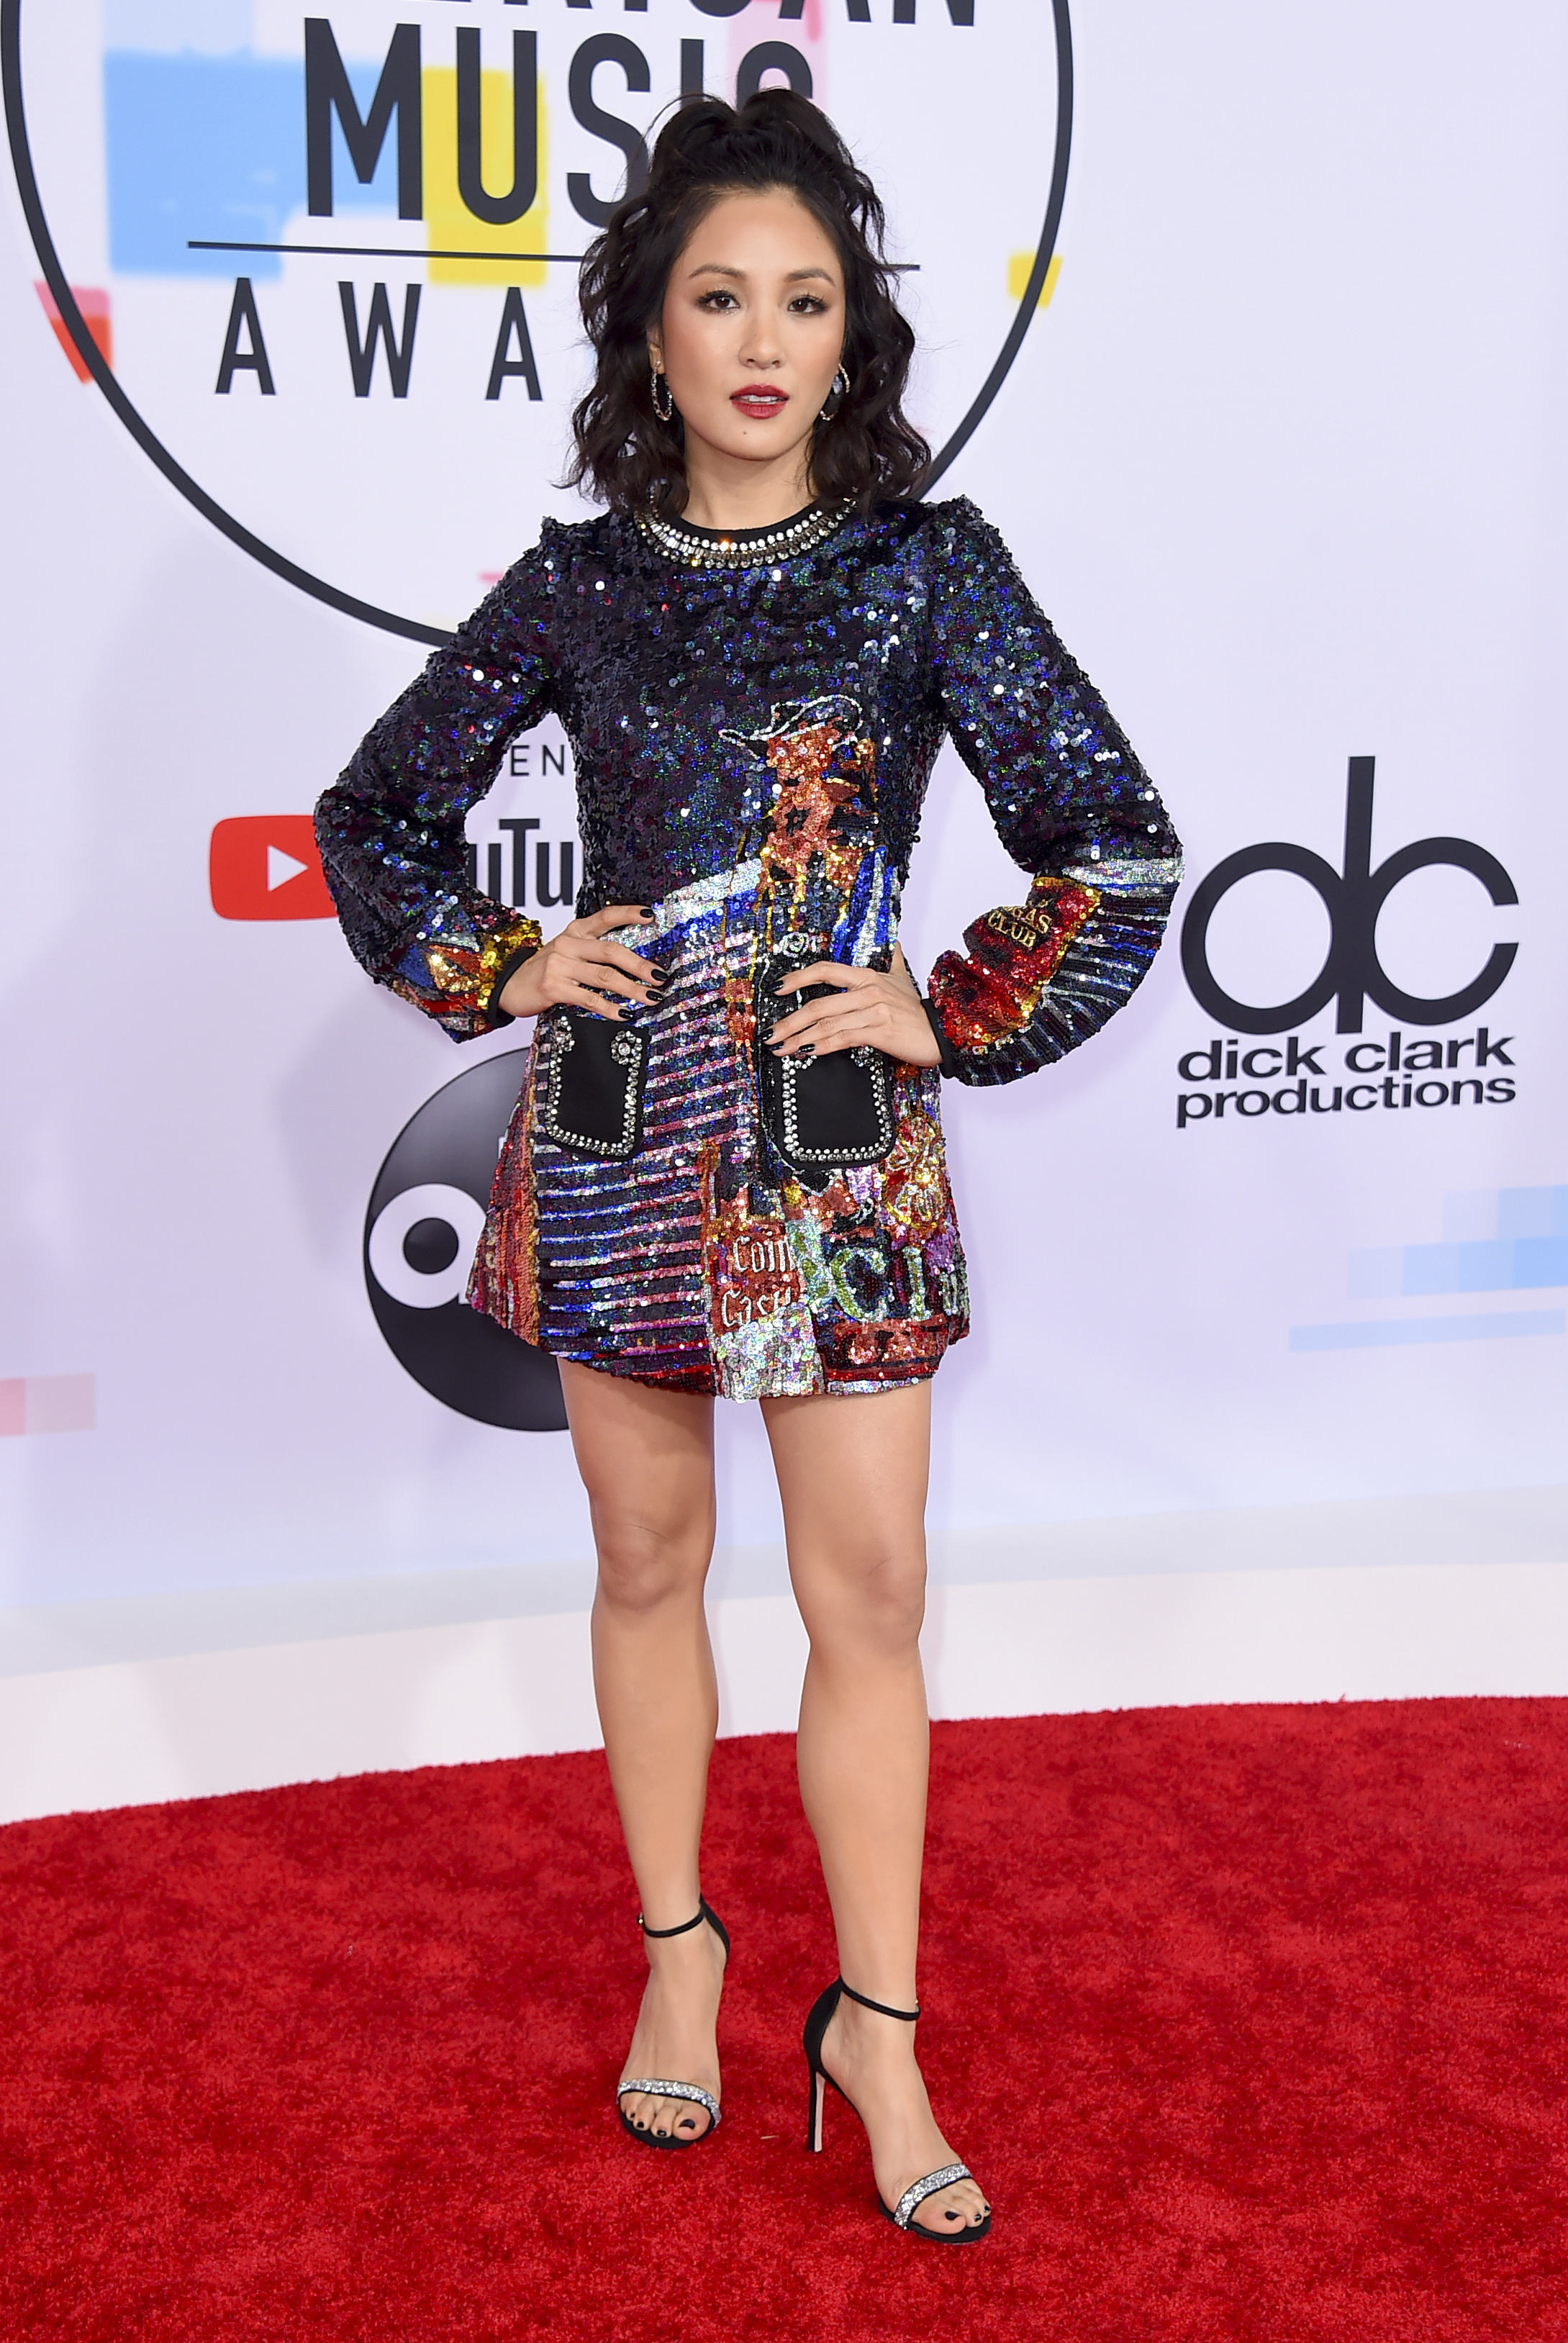 "<div class=""meta image-caption""><div class=""origin-logo origin-image none""><span>none</span></div><span class=""caption-text"">Constance Wu arrives at the American Music Awards on Tuesday, Oct. 9, 2018, at the Microsoft Theater in Los Angeles. (Jordan Strauss/Invision/AP)</span></div>"